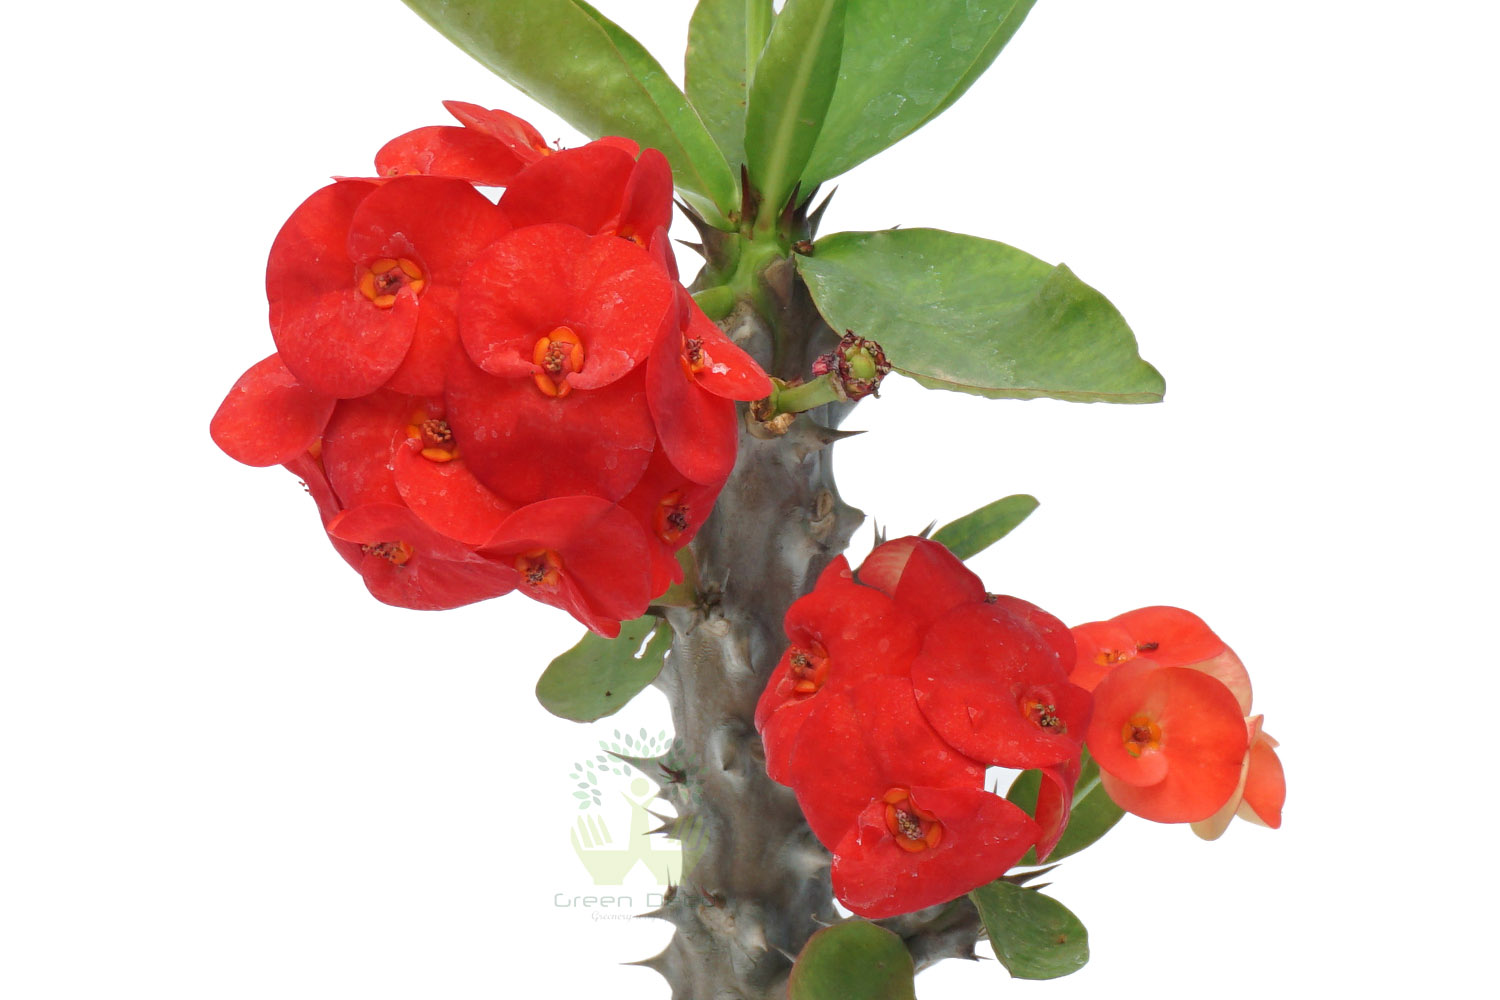 Buy Euphorbia Milli Plants , White Pots and seeds in Delhi NCR by the best online nursery shop Greendecor.